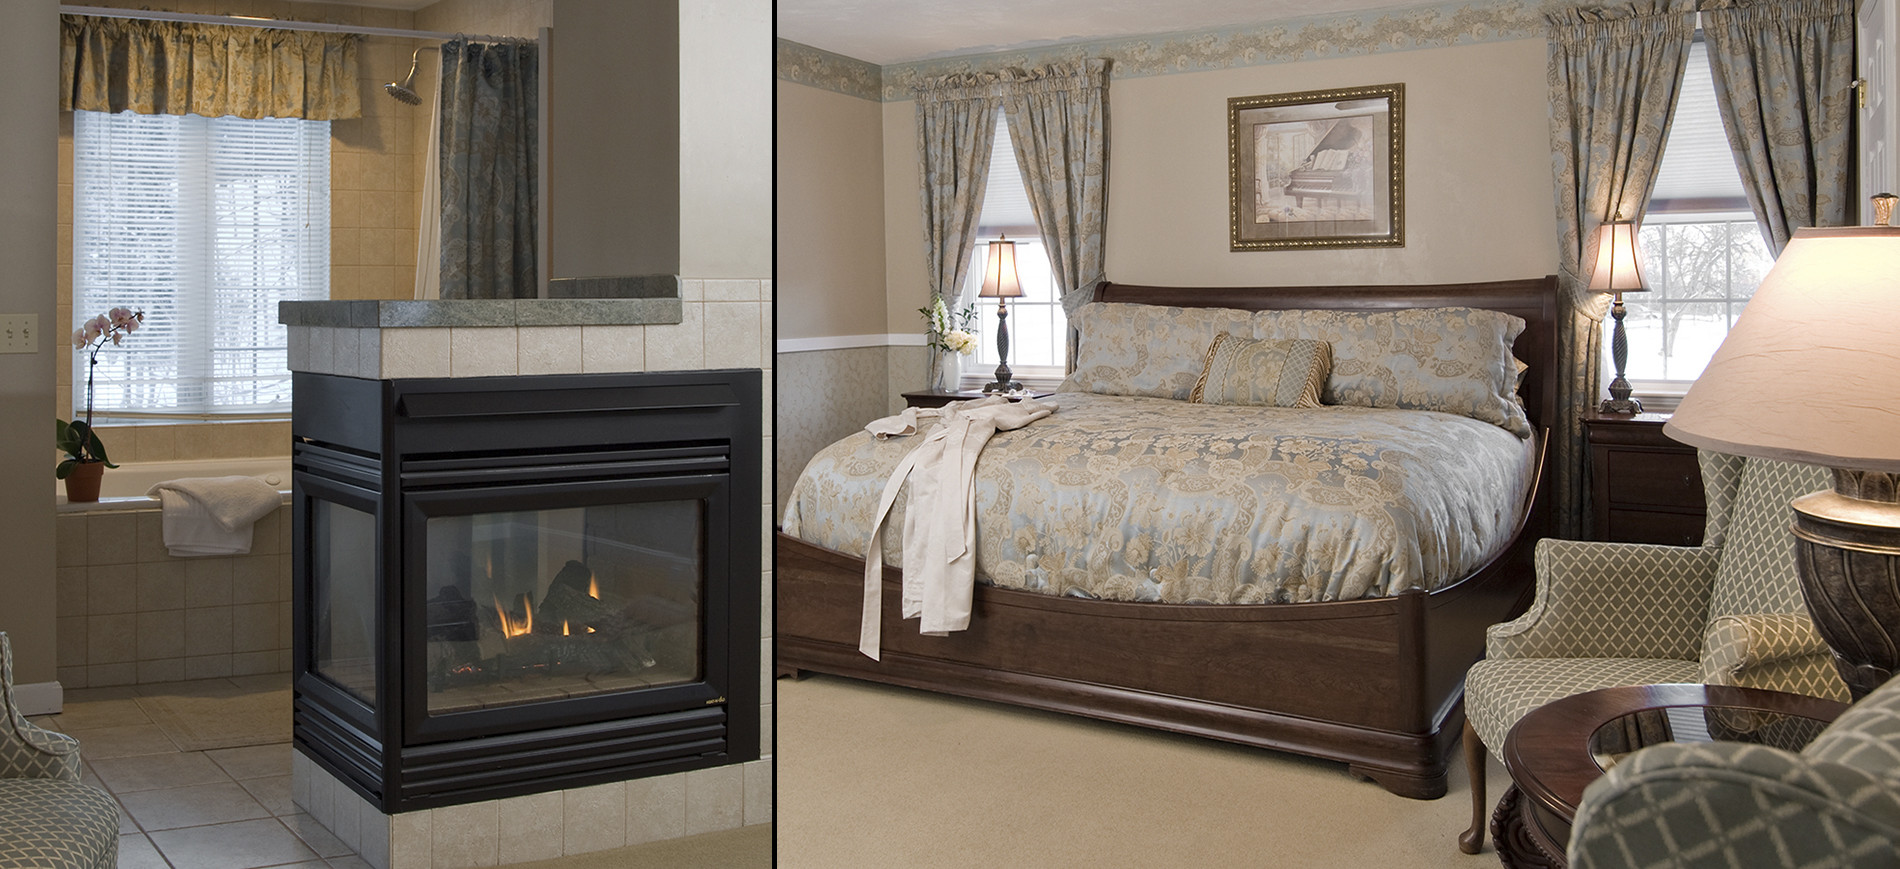 Our Jacuzzi Rooms Perfect For Romantic Getaways In New